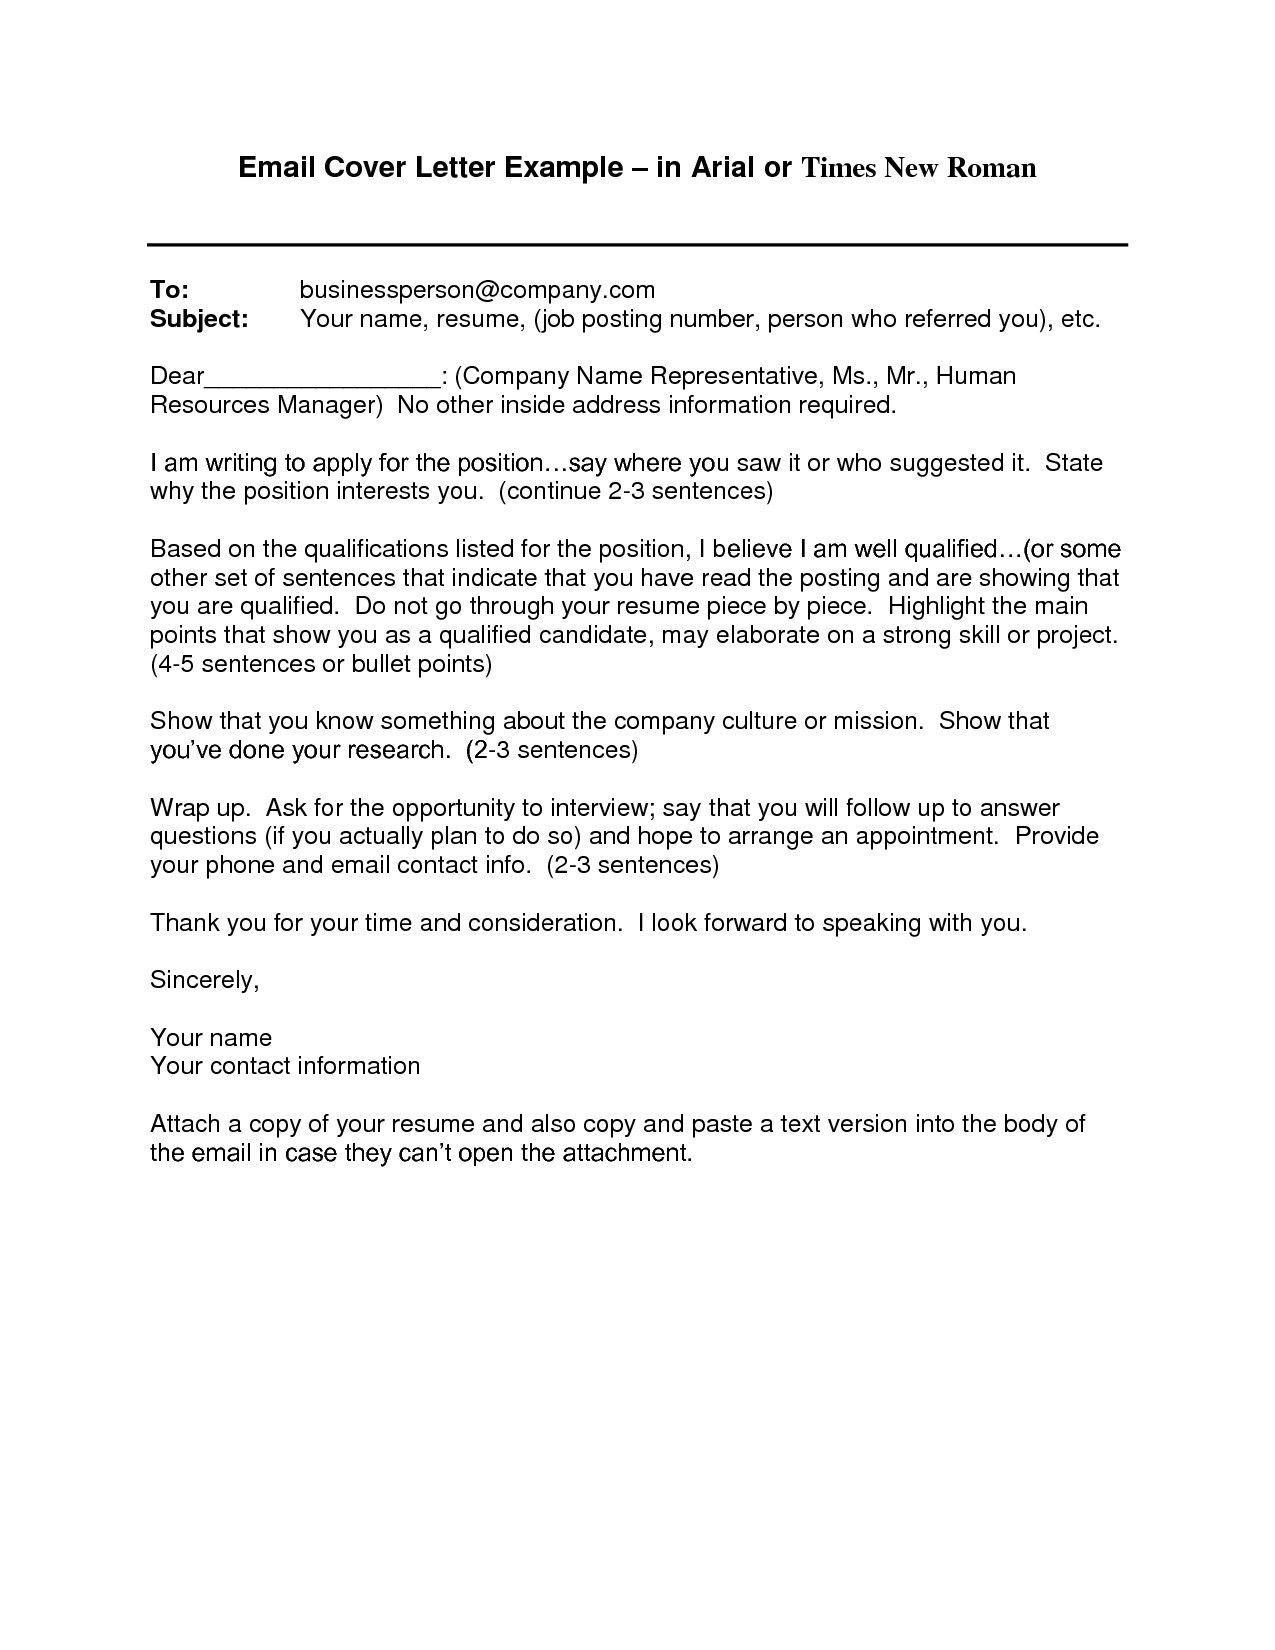 cover letter template via email resume format job for school clerk current startup on Resume Resume Cover Letter Via Email